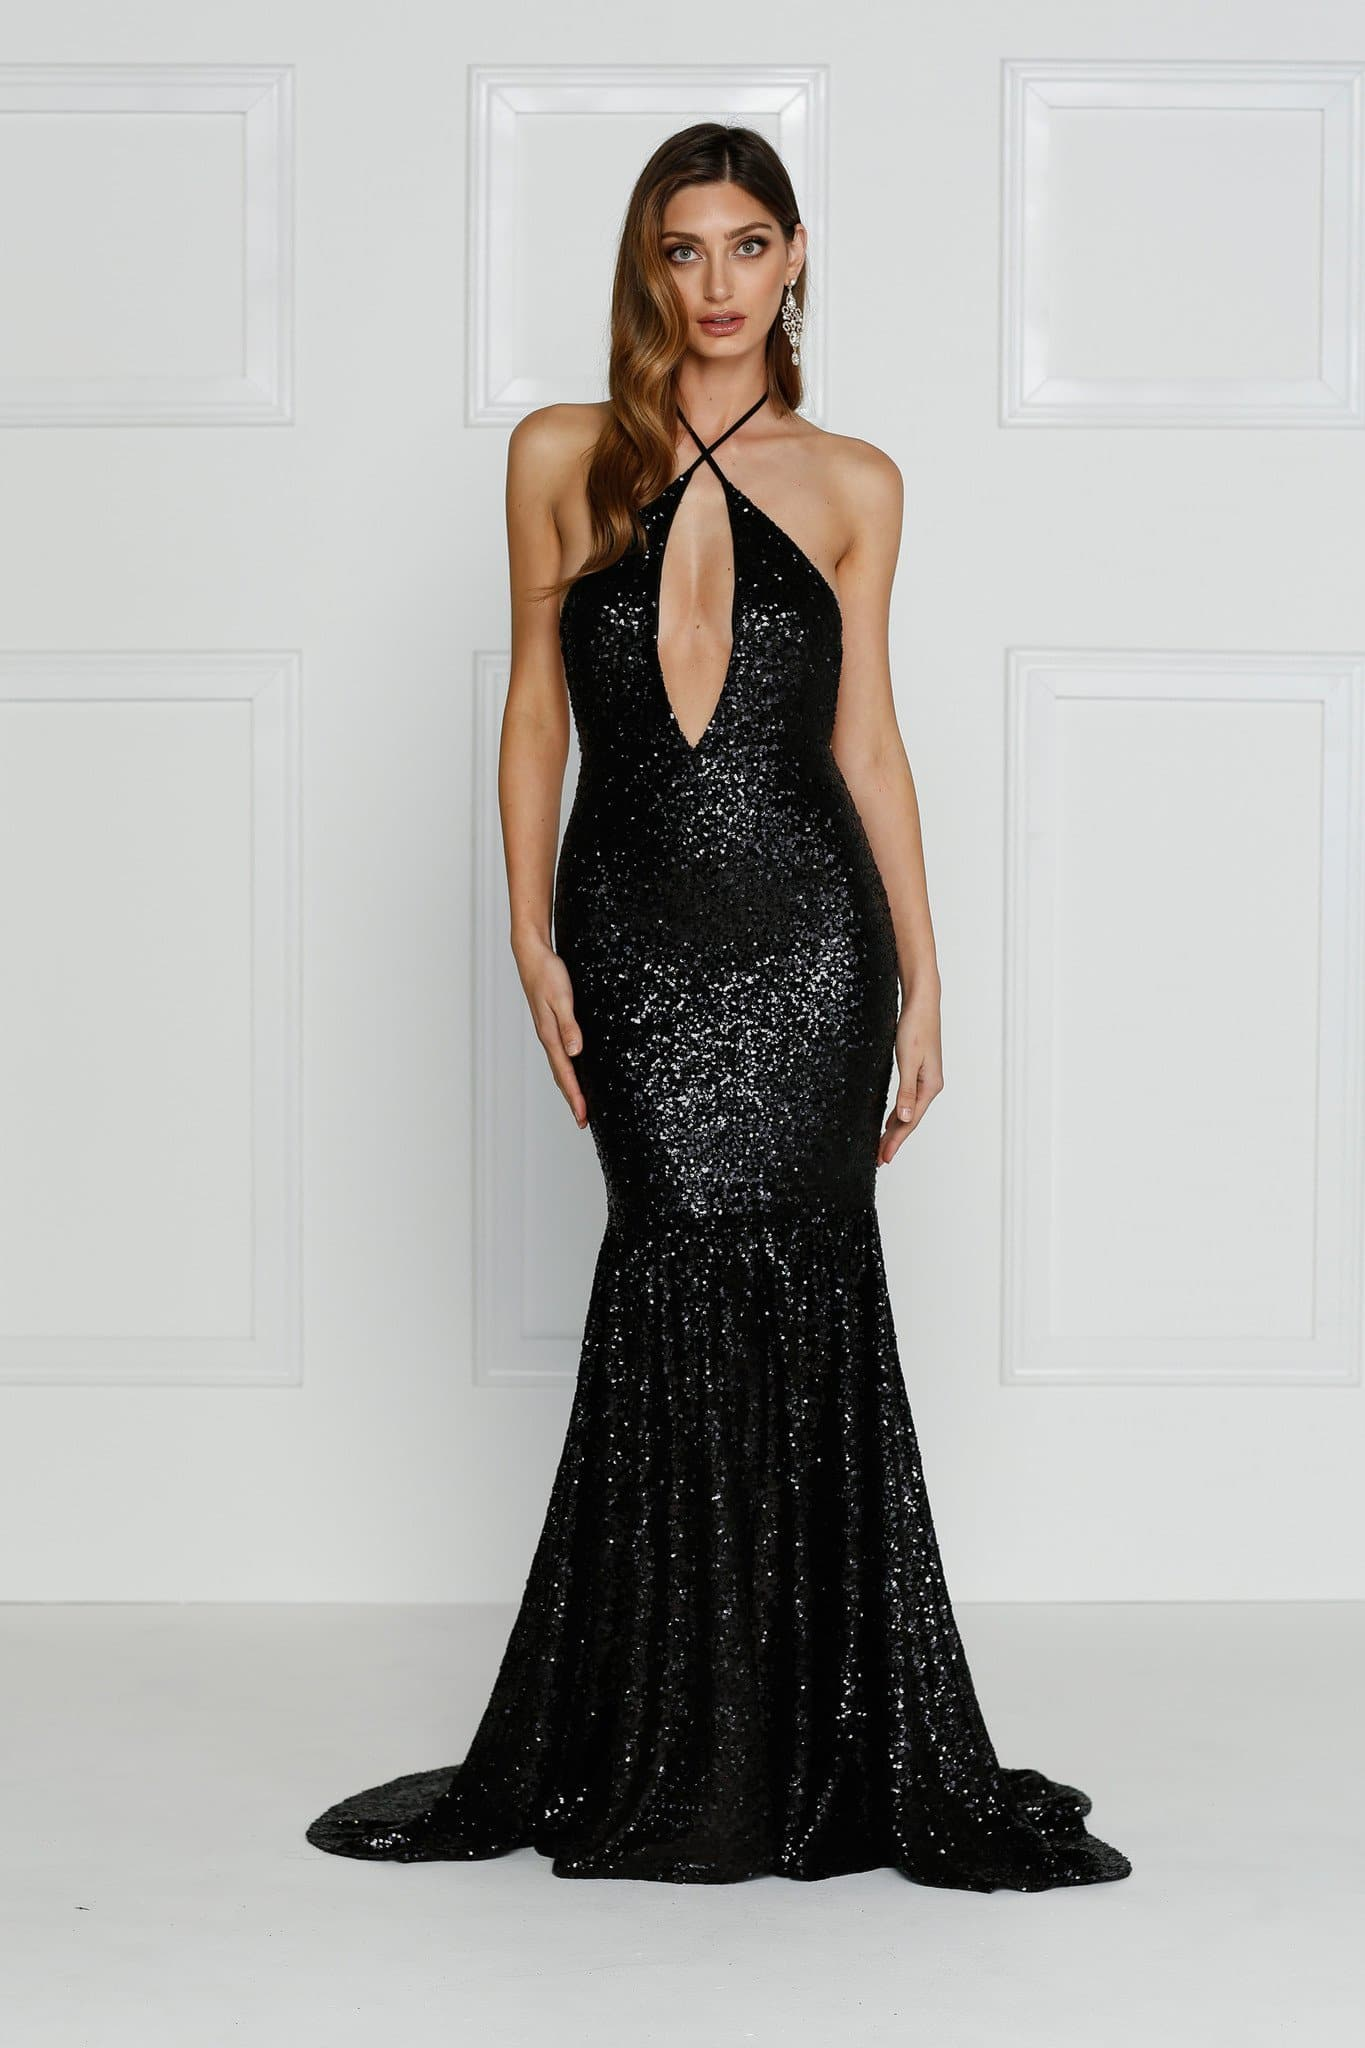 Bolivia - Black Sequin Gown with Open Back and Plunging Neckline